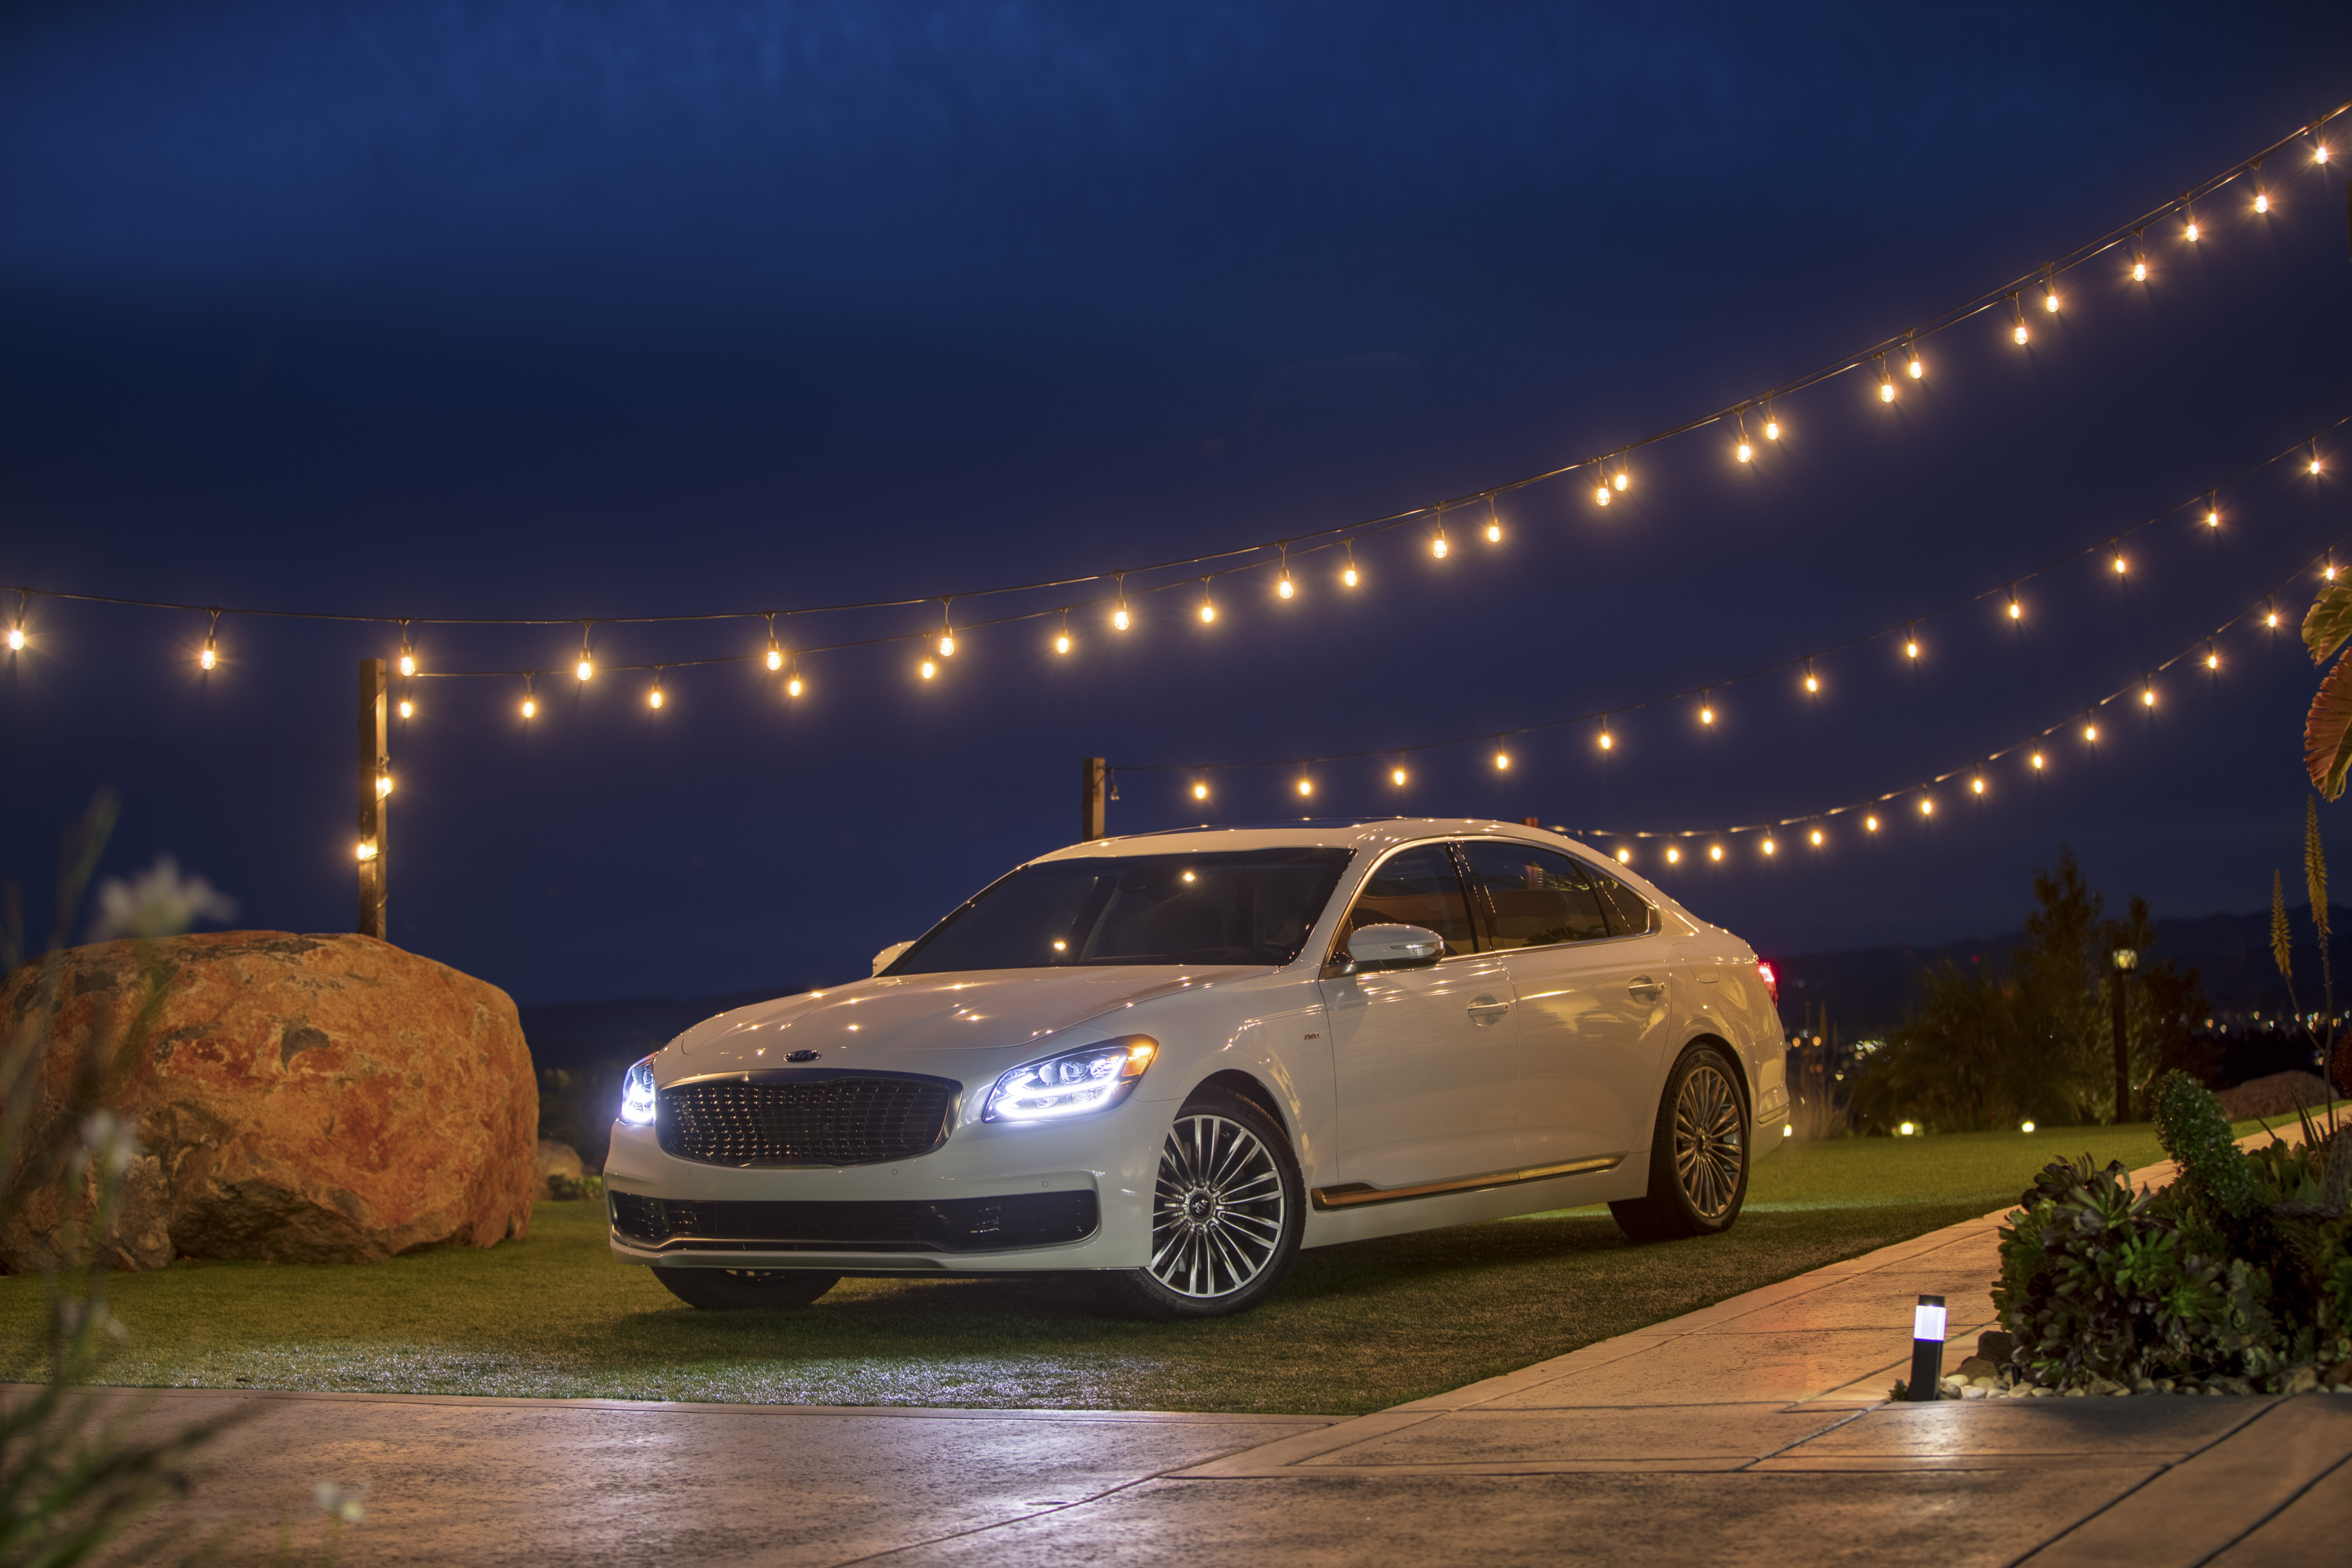 new york design adopts understated auto s news celebrates the nyias at large all default cost u kia debut heart show stinger and